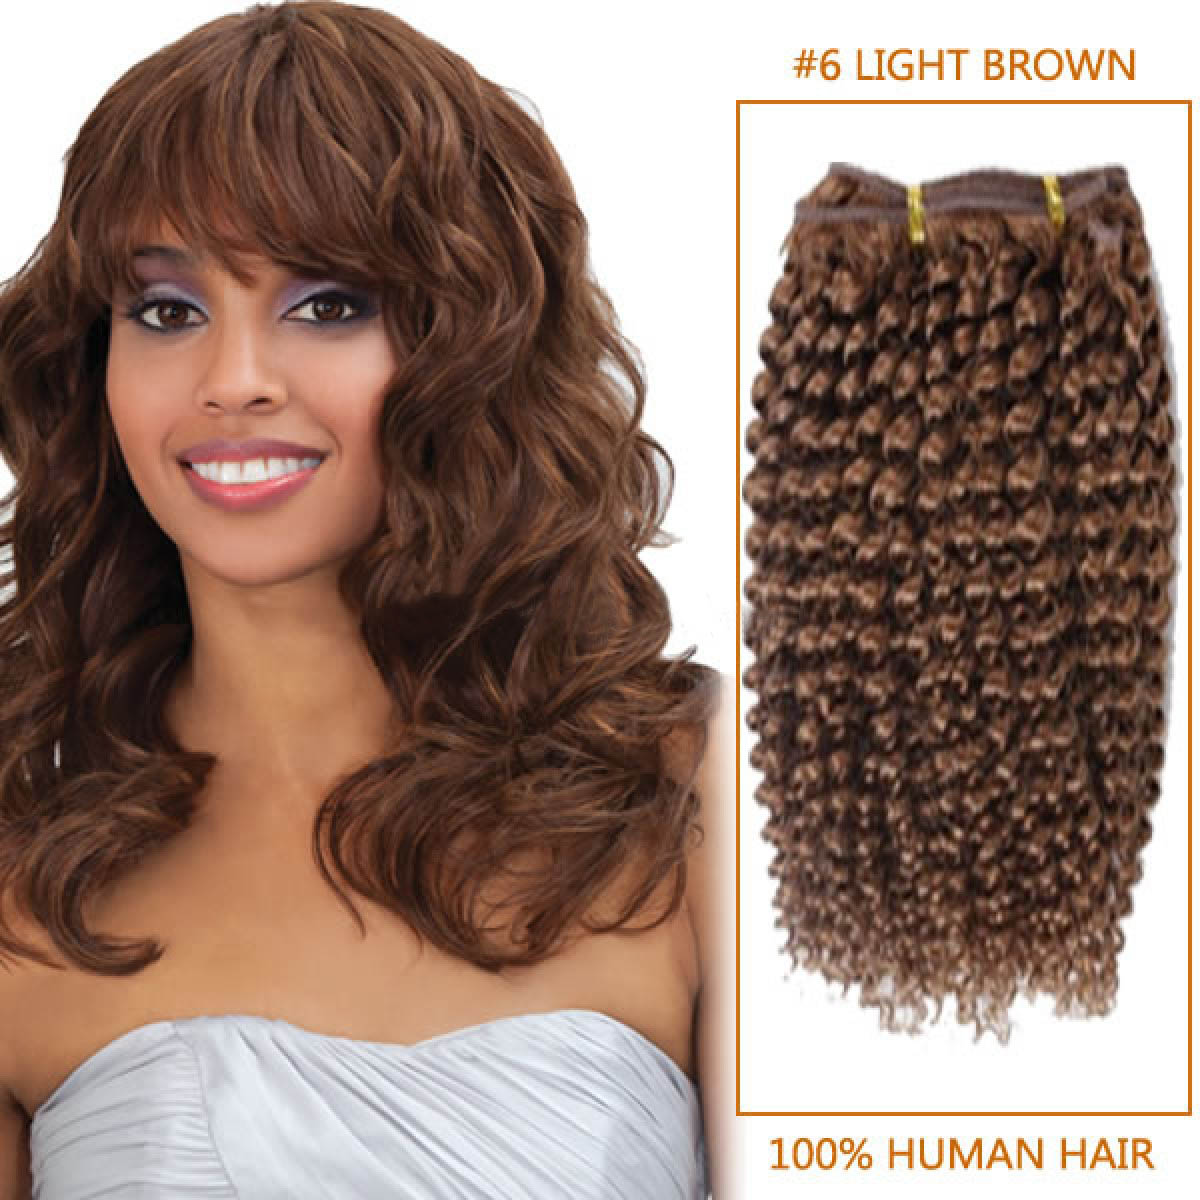 22 Inch 6 Light Brown Afro Curl Indian Remy Hair Wefts